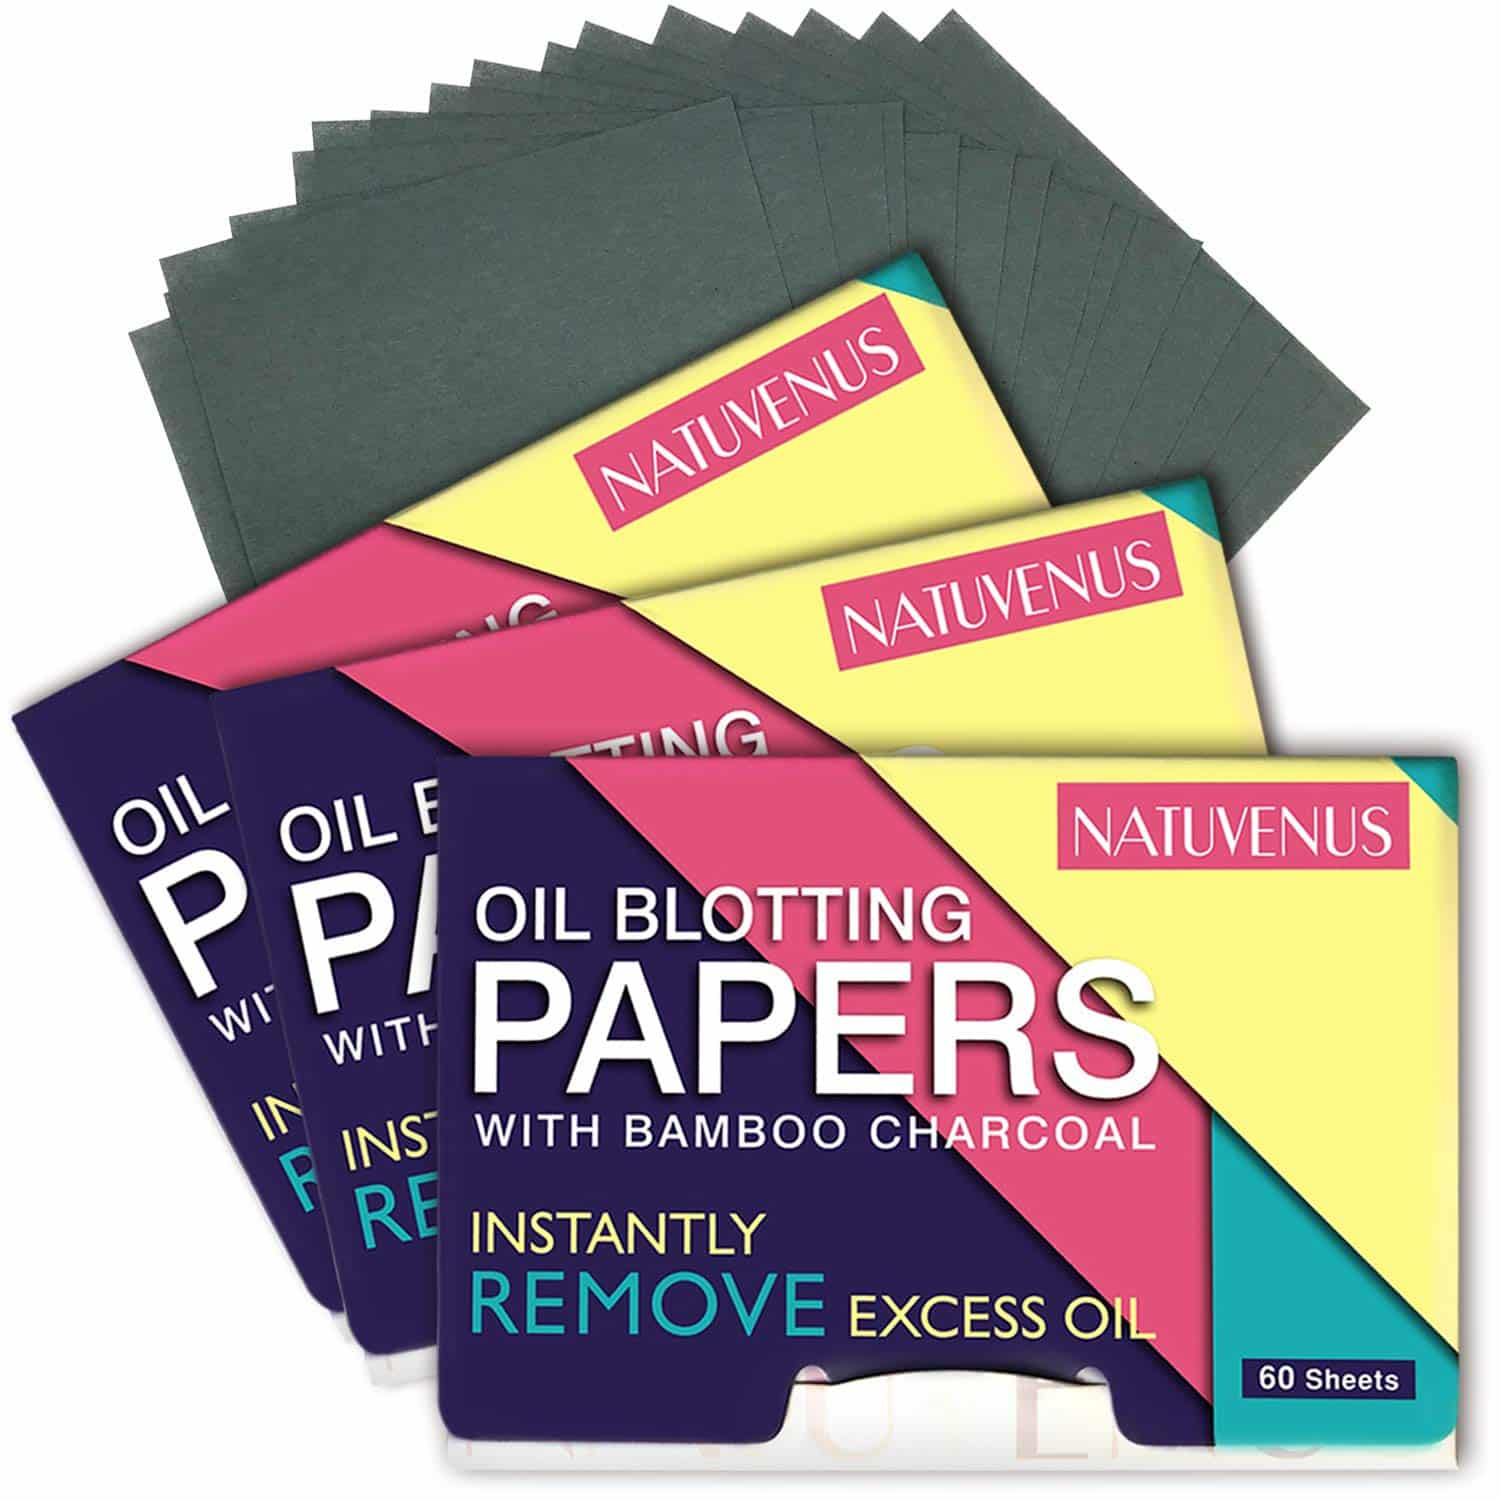 Natuvenus Oil Blotting Papers